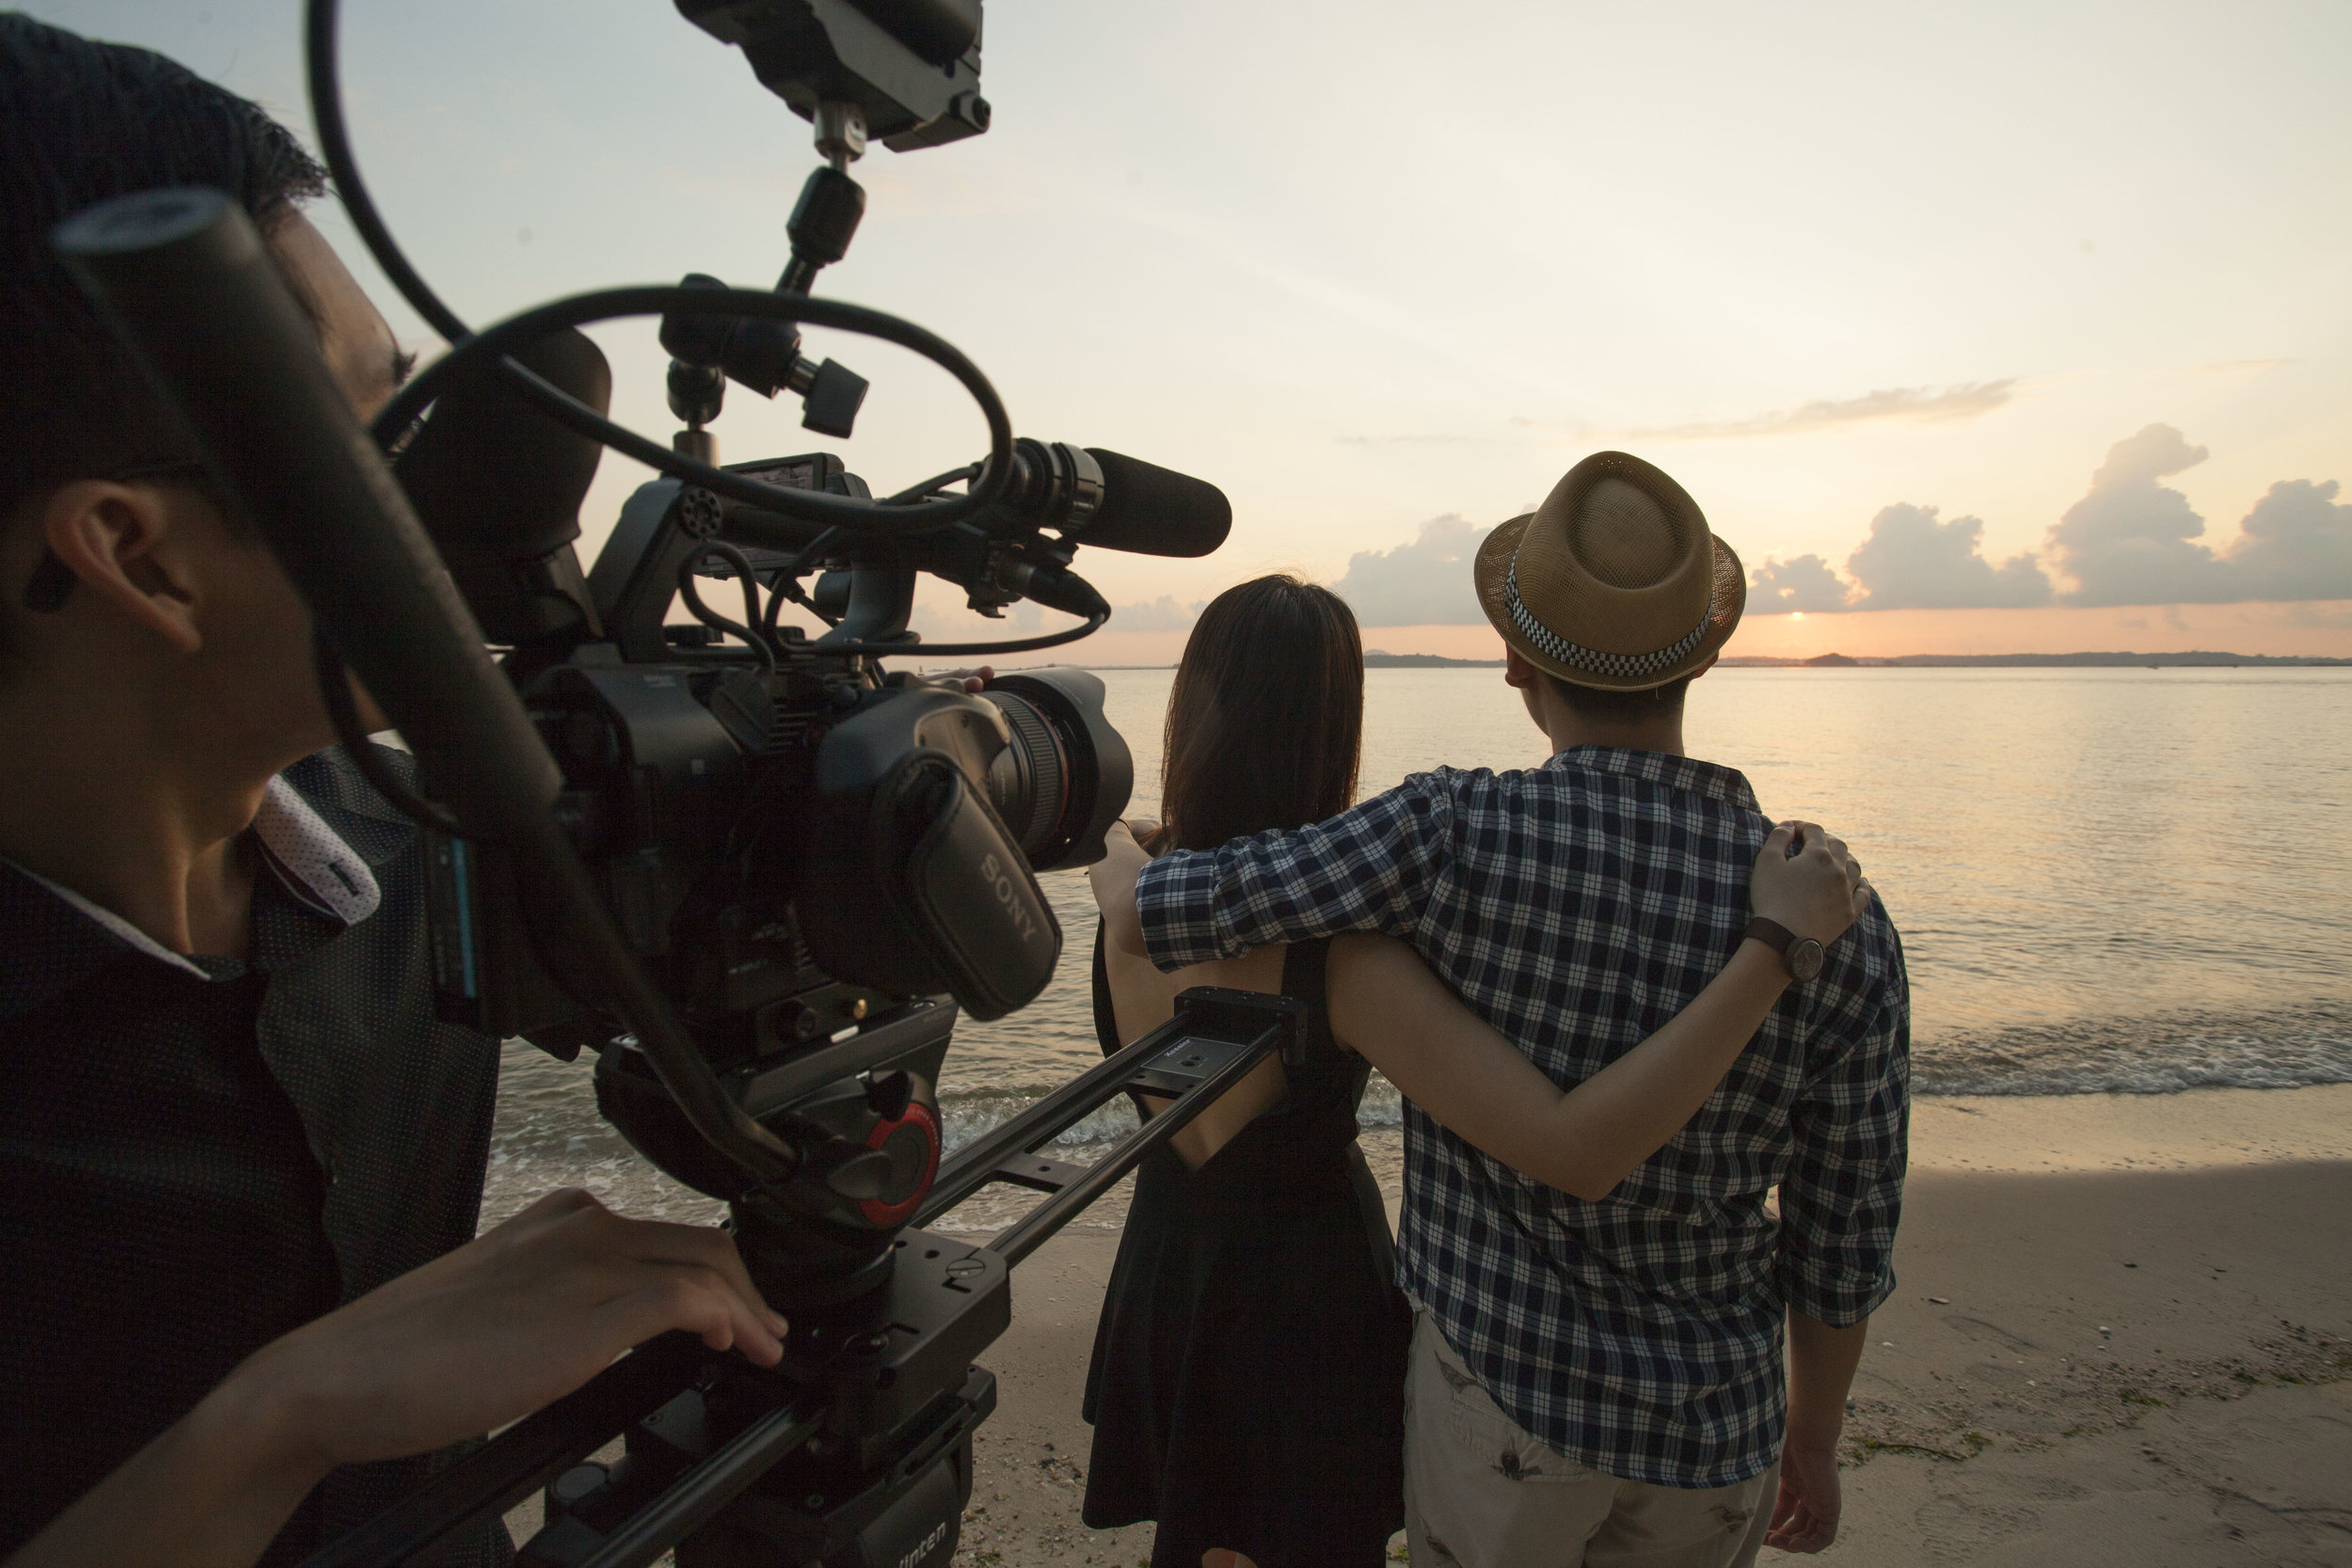 Shooting at sunset with the Sony FS5